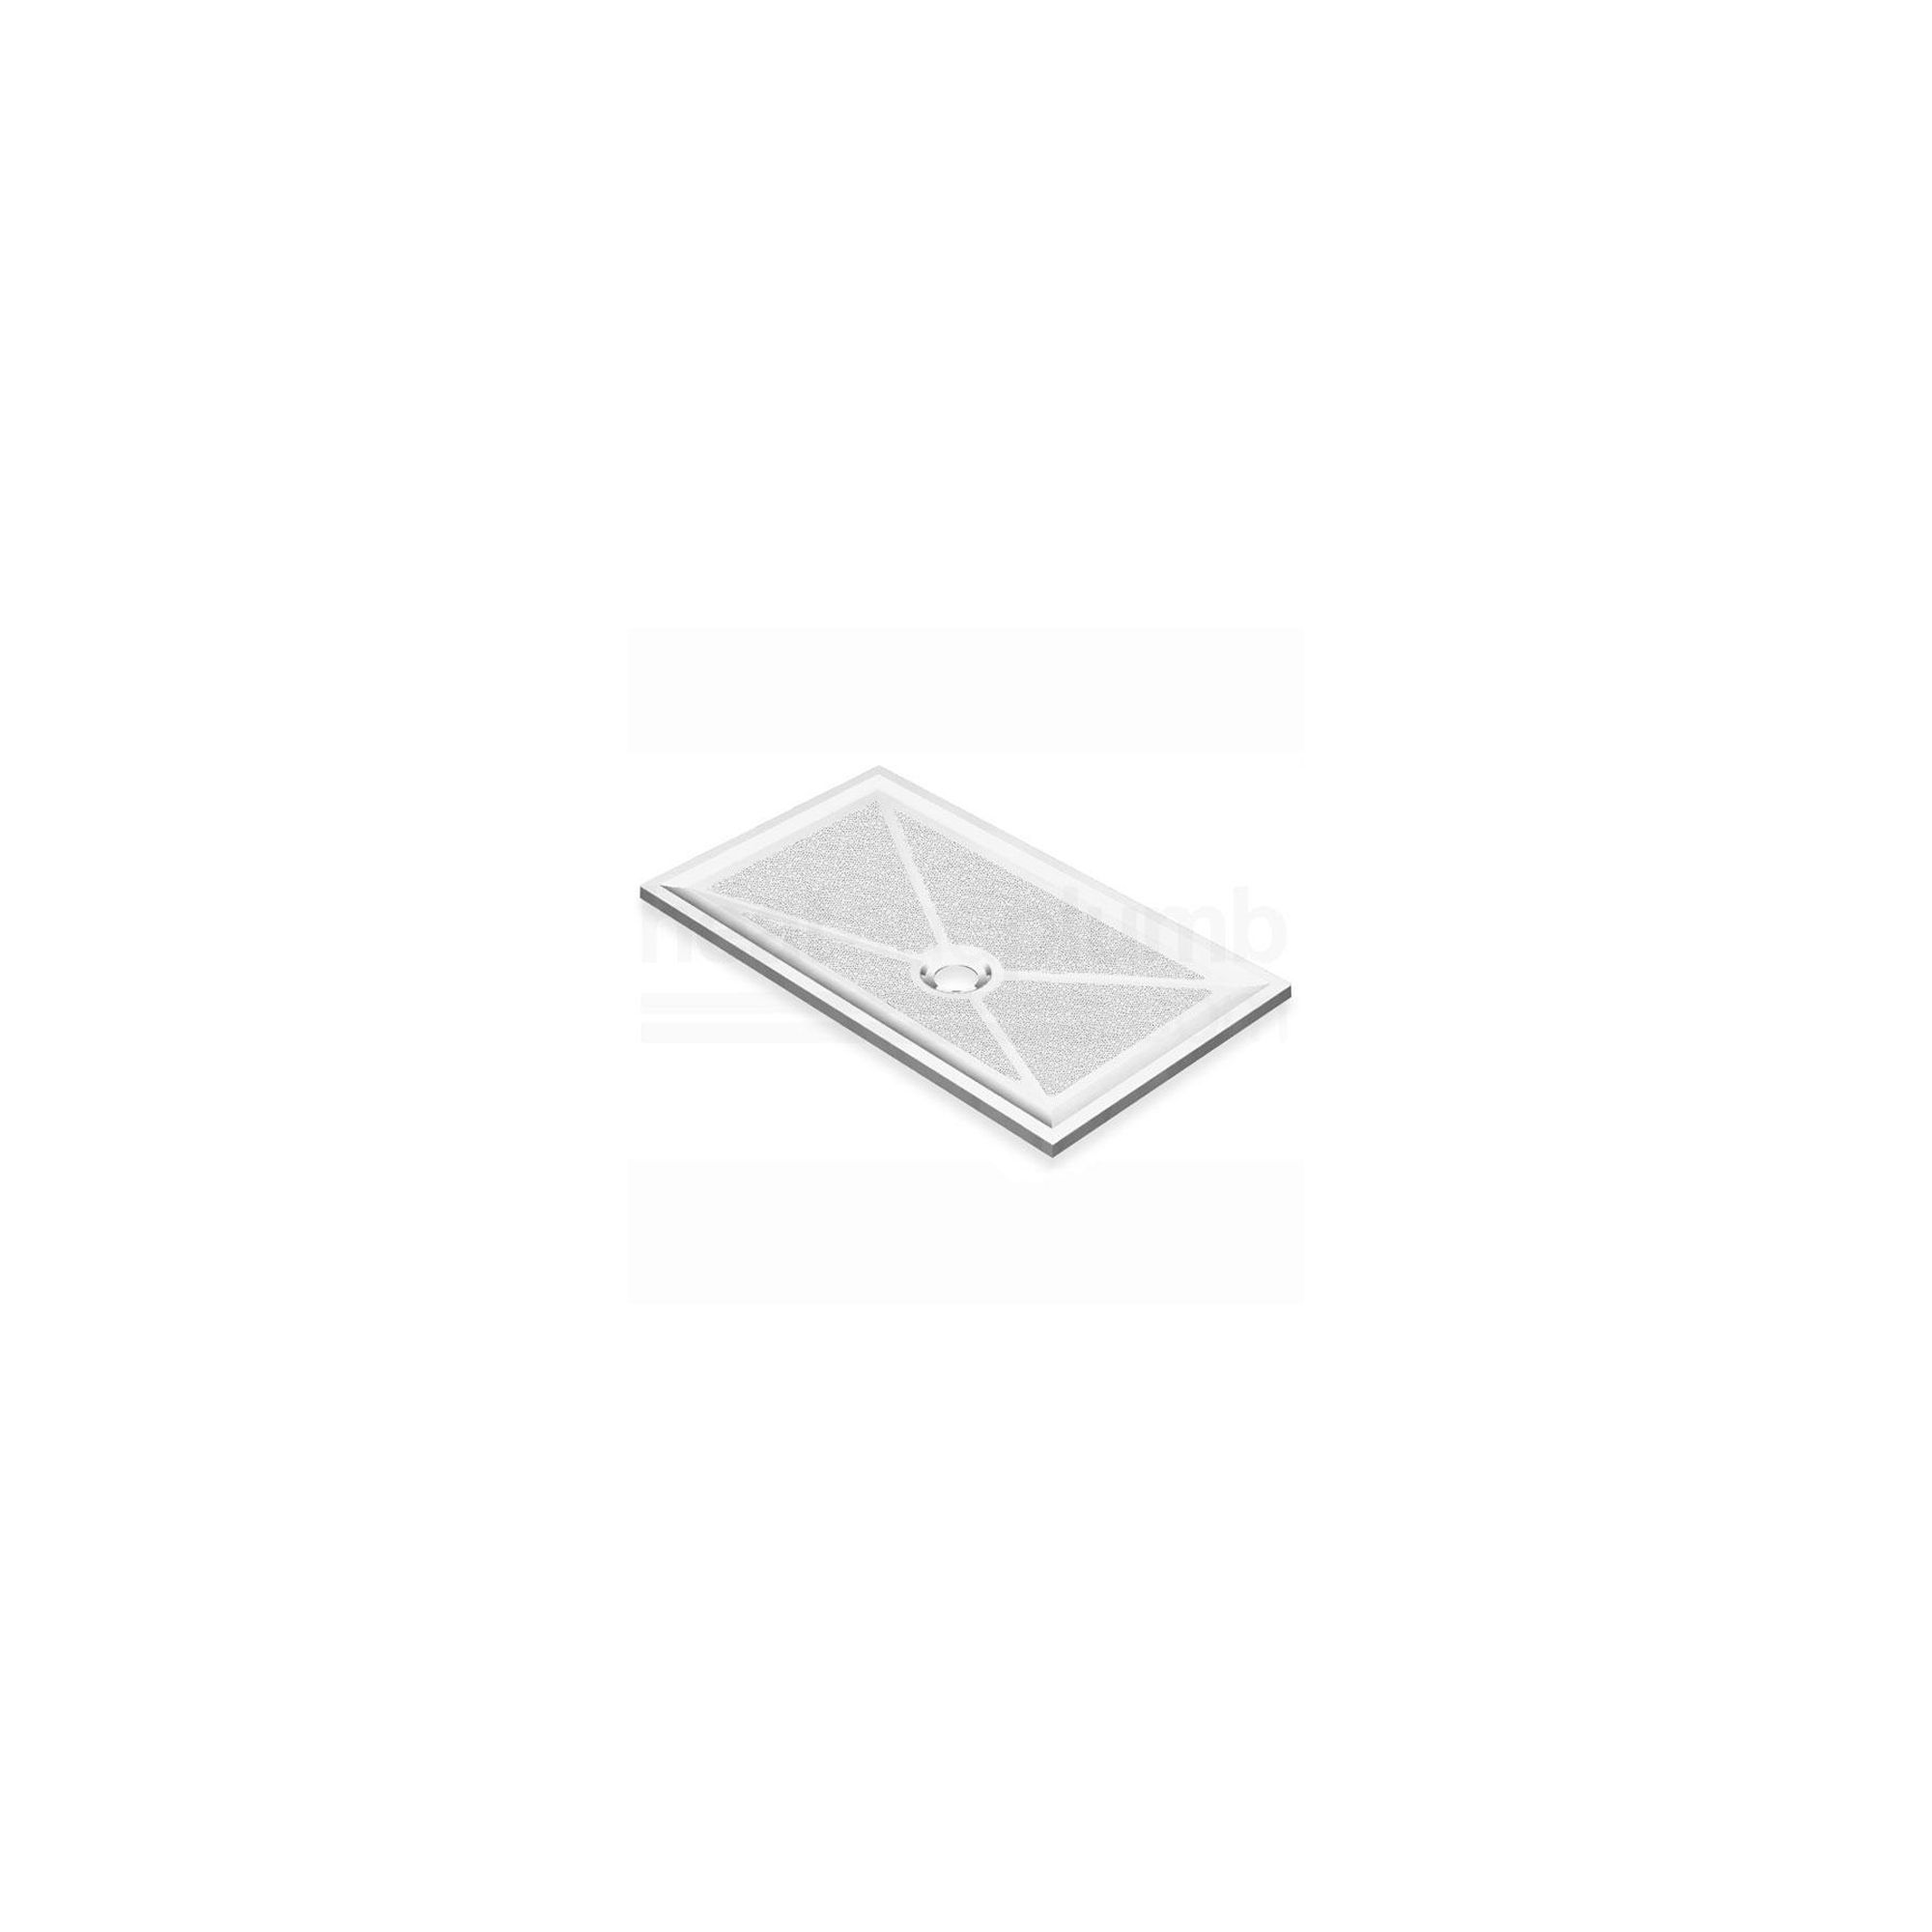 AKW Low Profile Rectangular Shower Tray 1300mm x 820mm at Tesco Direct